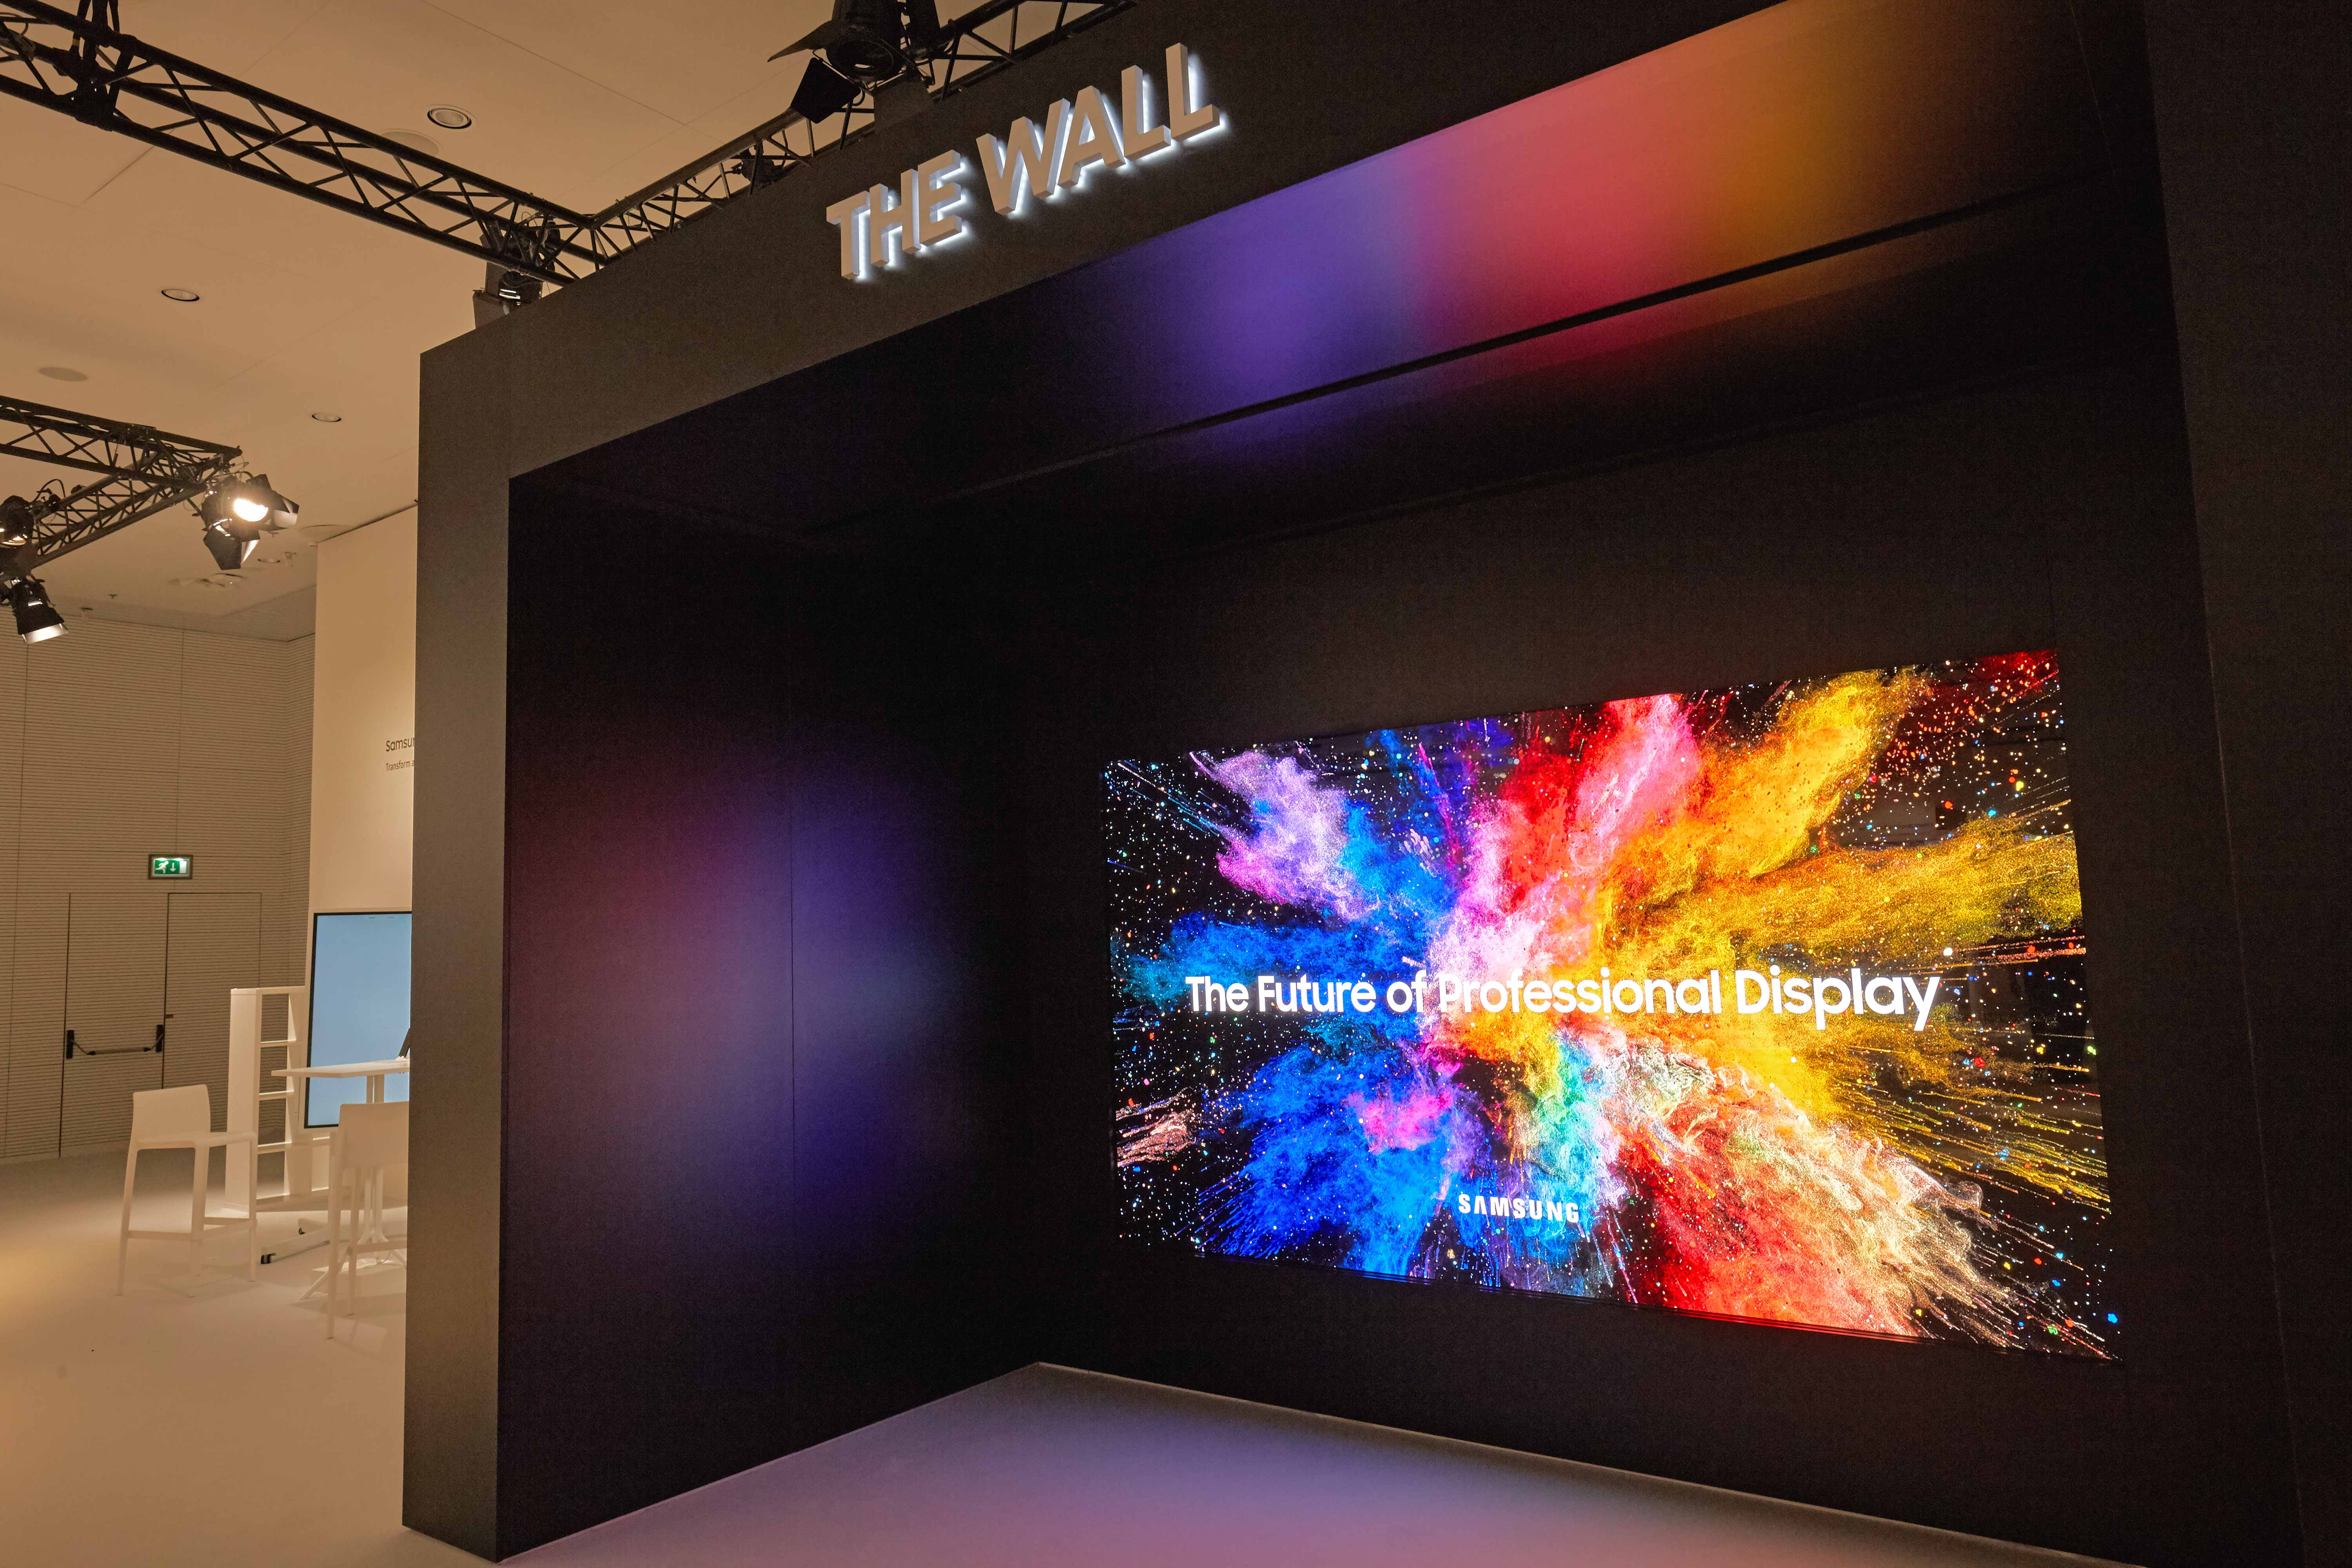 Samsung-ISE-2018_THE-WALL-PROFESSIONAL